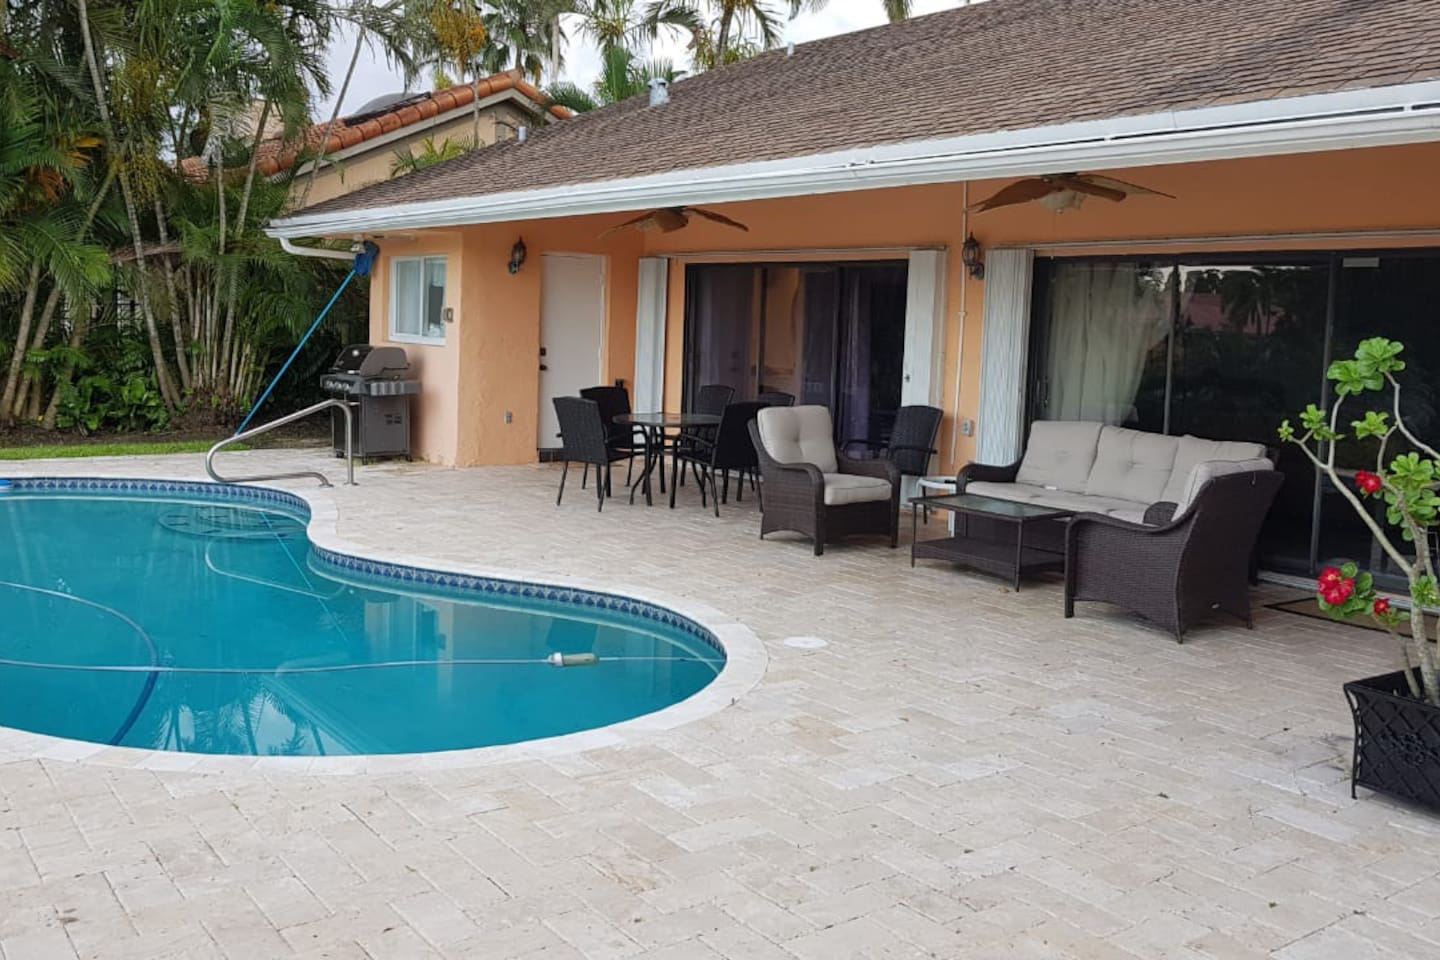 House on a canal, where fishing is available. View of Jacaranda Golf Club.,walking distance.10 min to Sawgrass Mills Mall, 10 min to Fort Lauderdale Airport and 45min to Miami Airport. 10 min to Hard Rock Casino, 20 min to Fort Lauderdale Beach. 3 hours to Orlando.